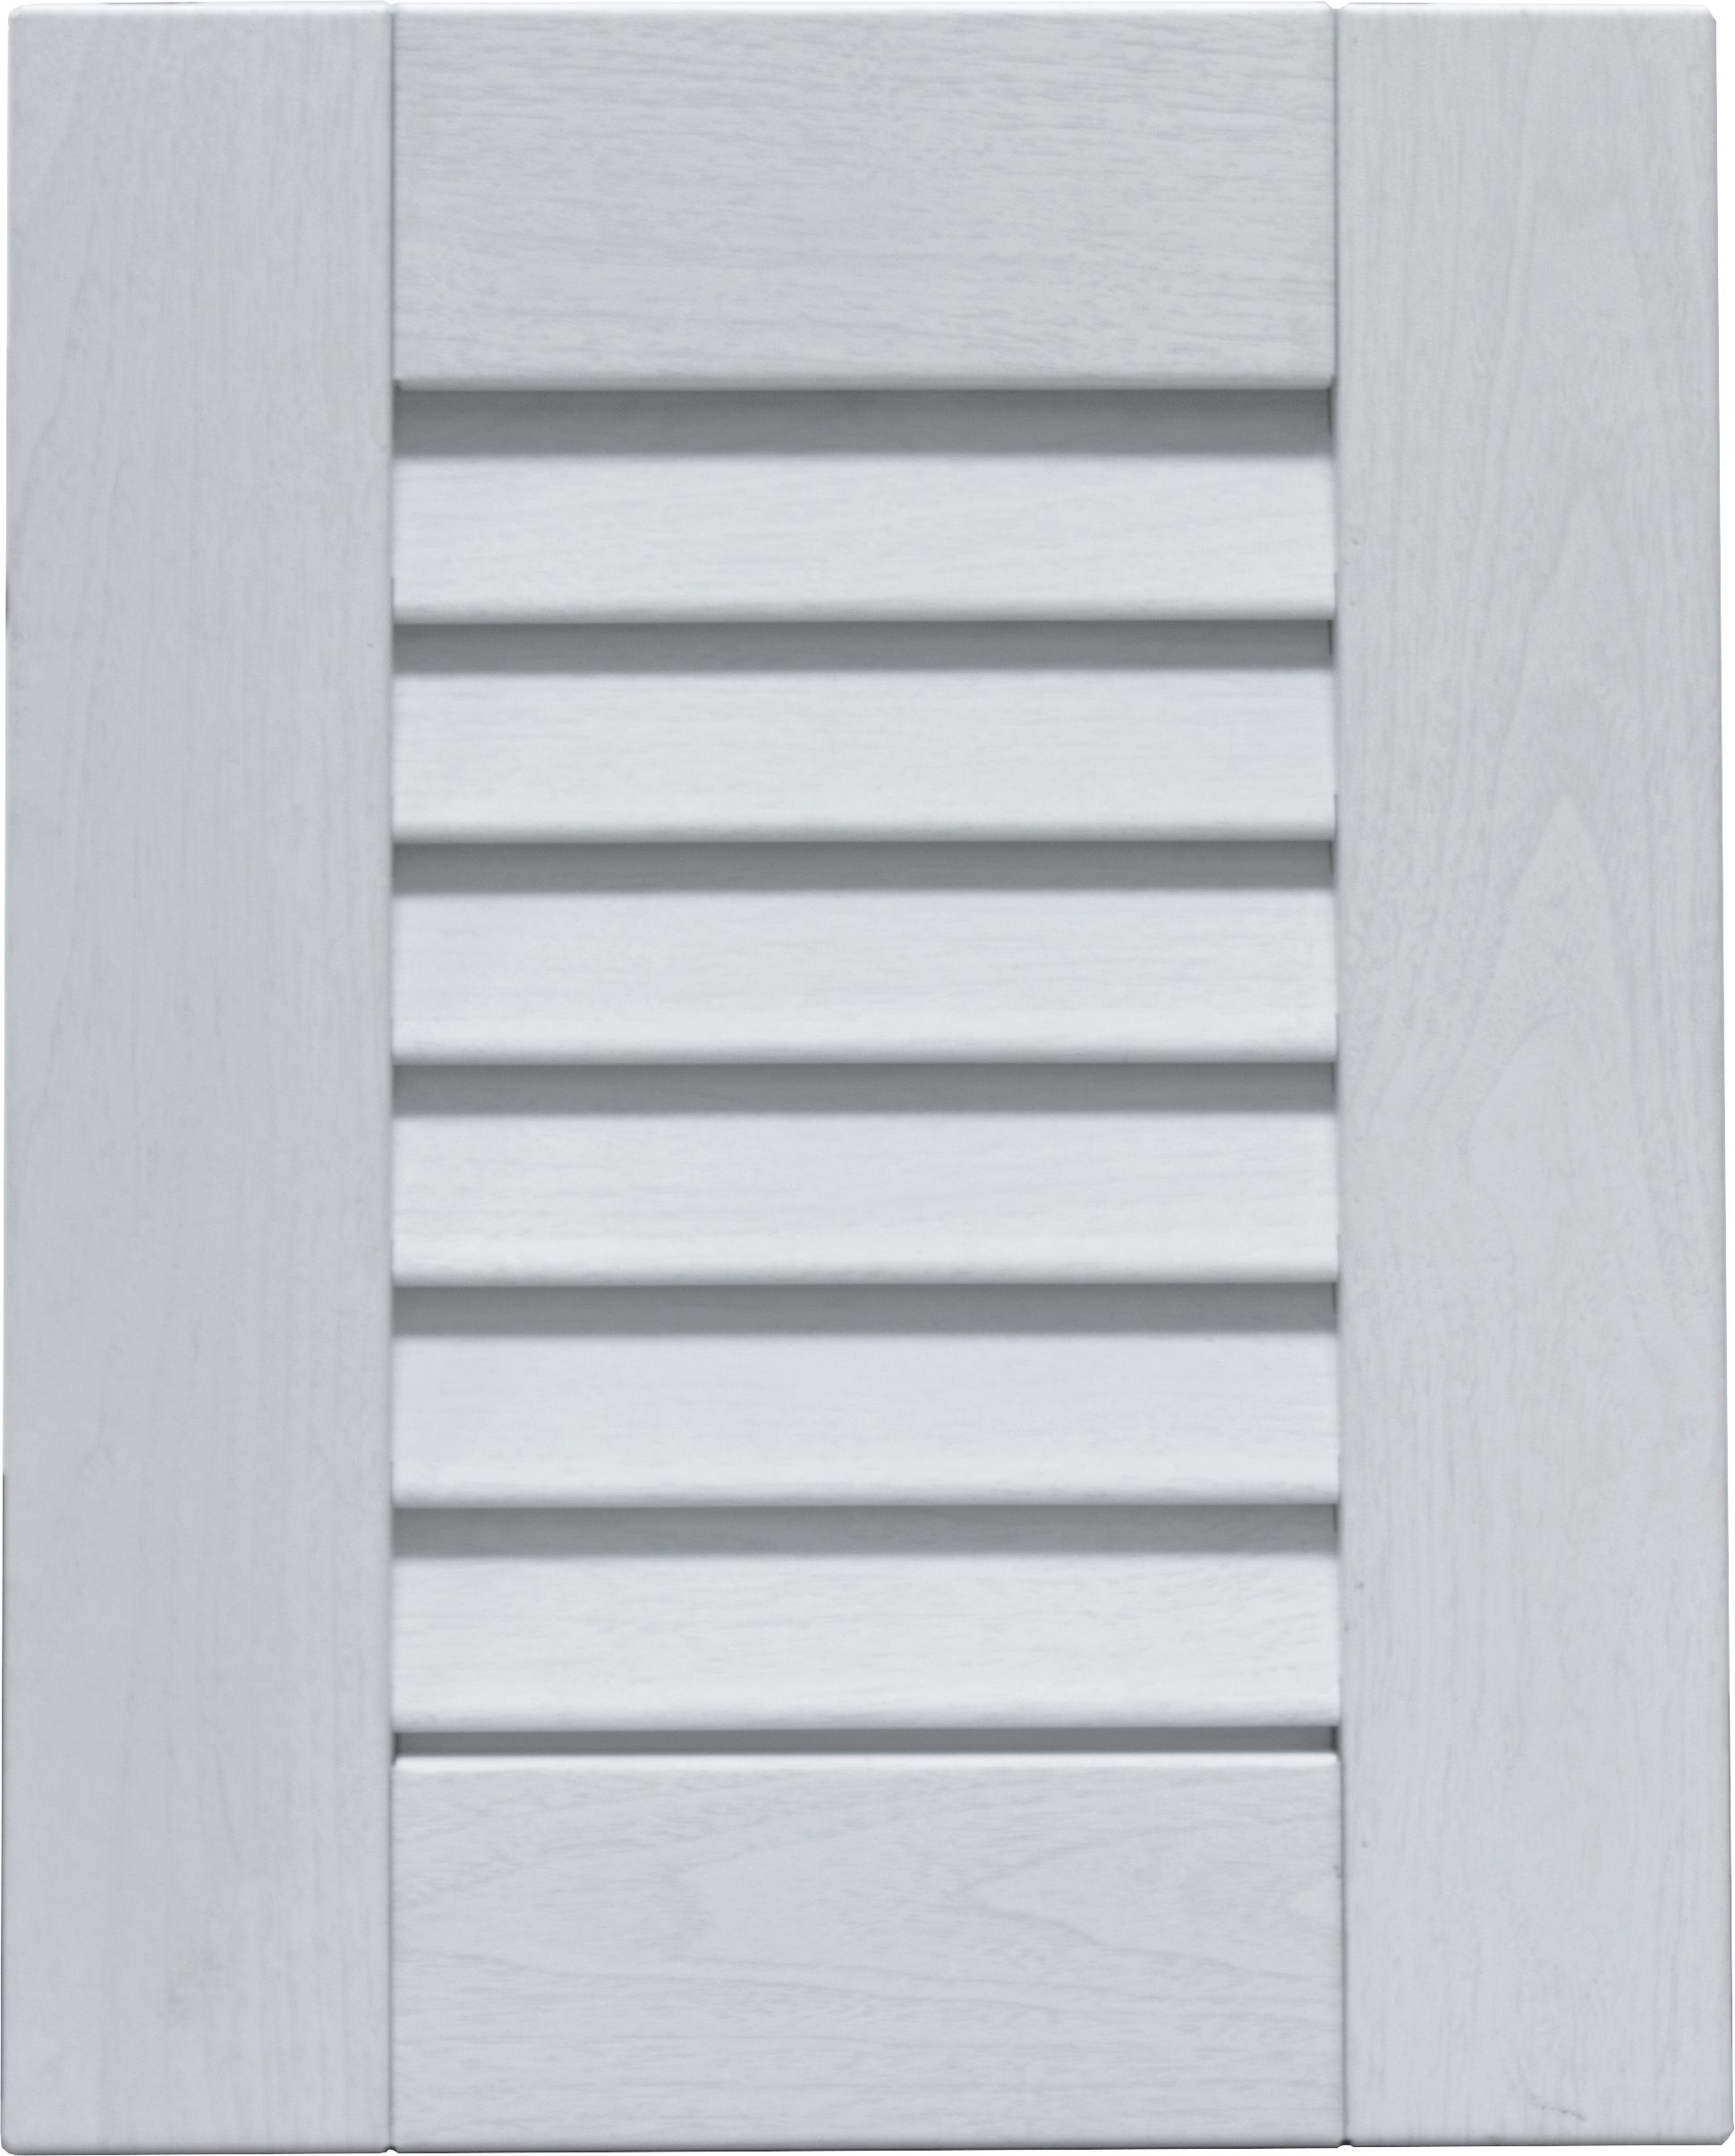 Louver Door Style In White Washed Wood Woodgrain Powder Coat